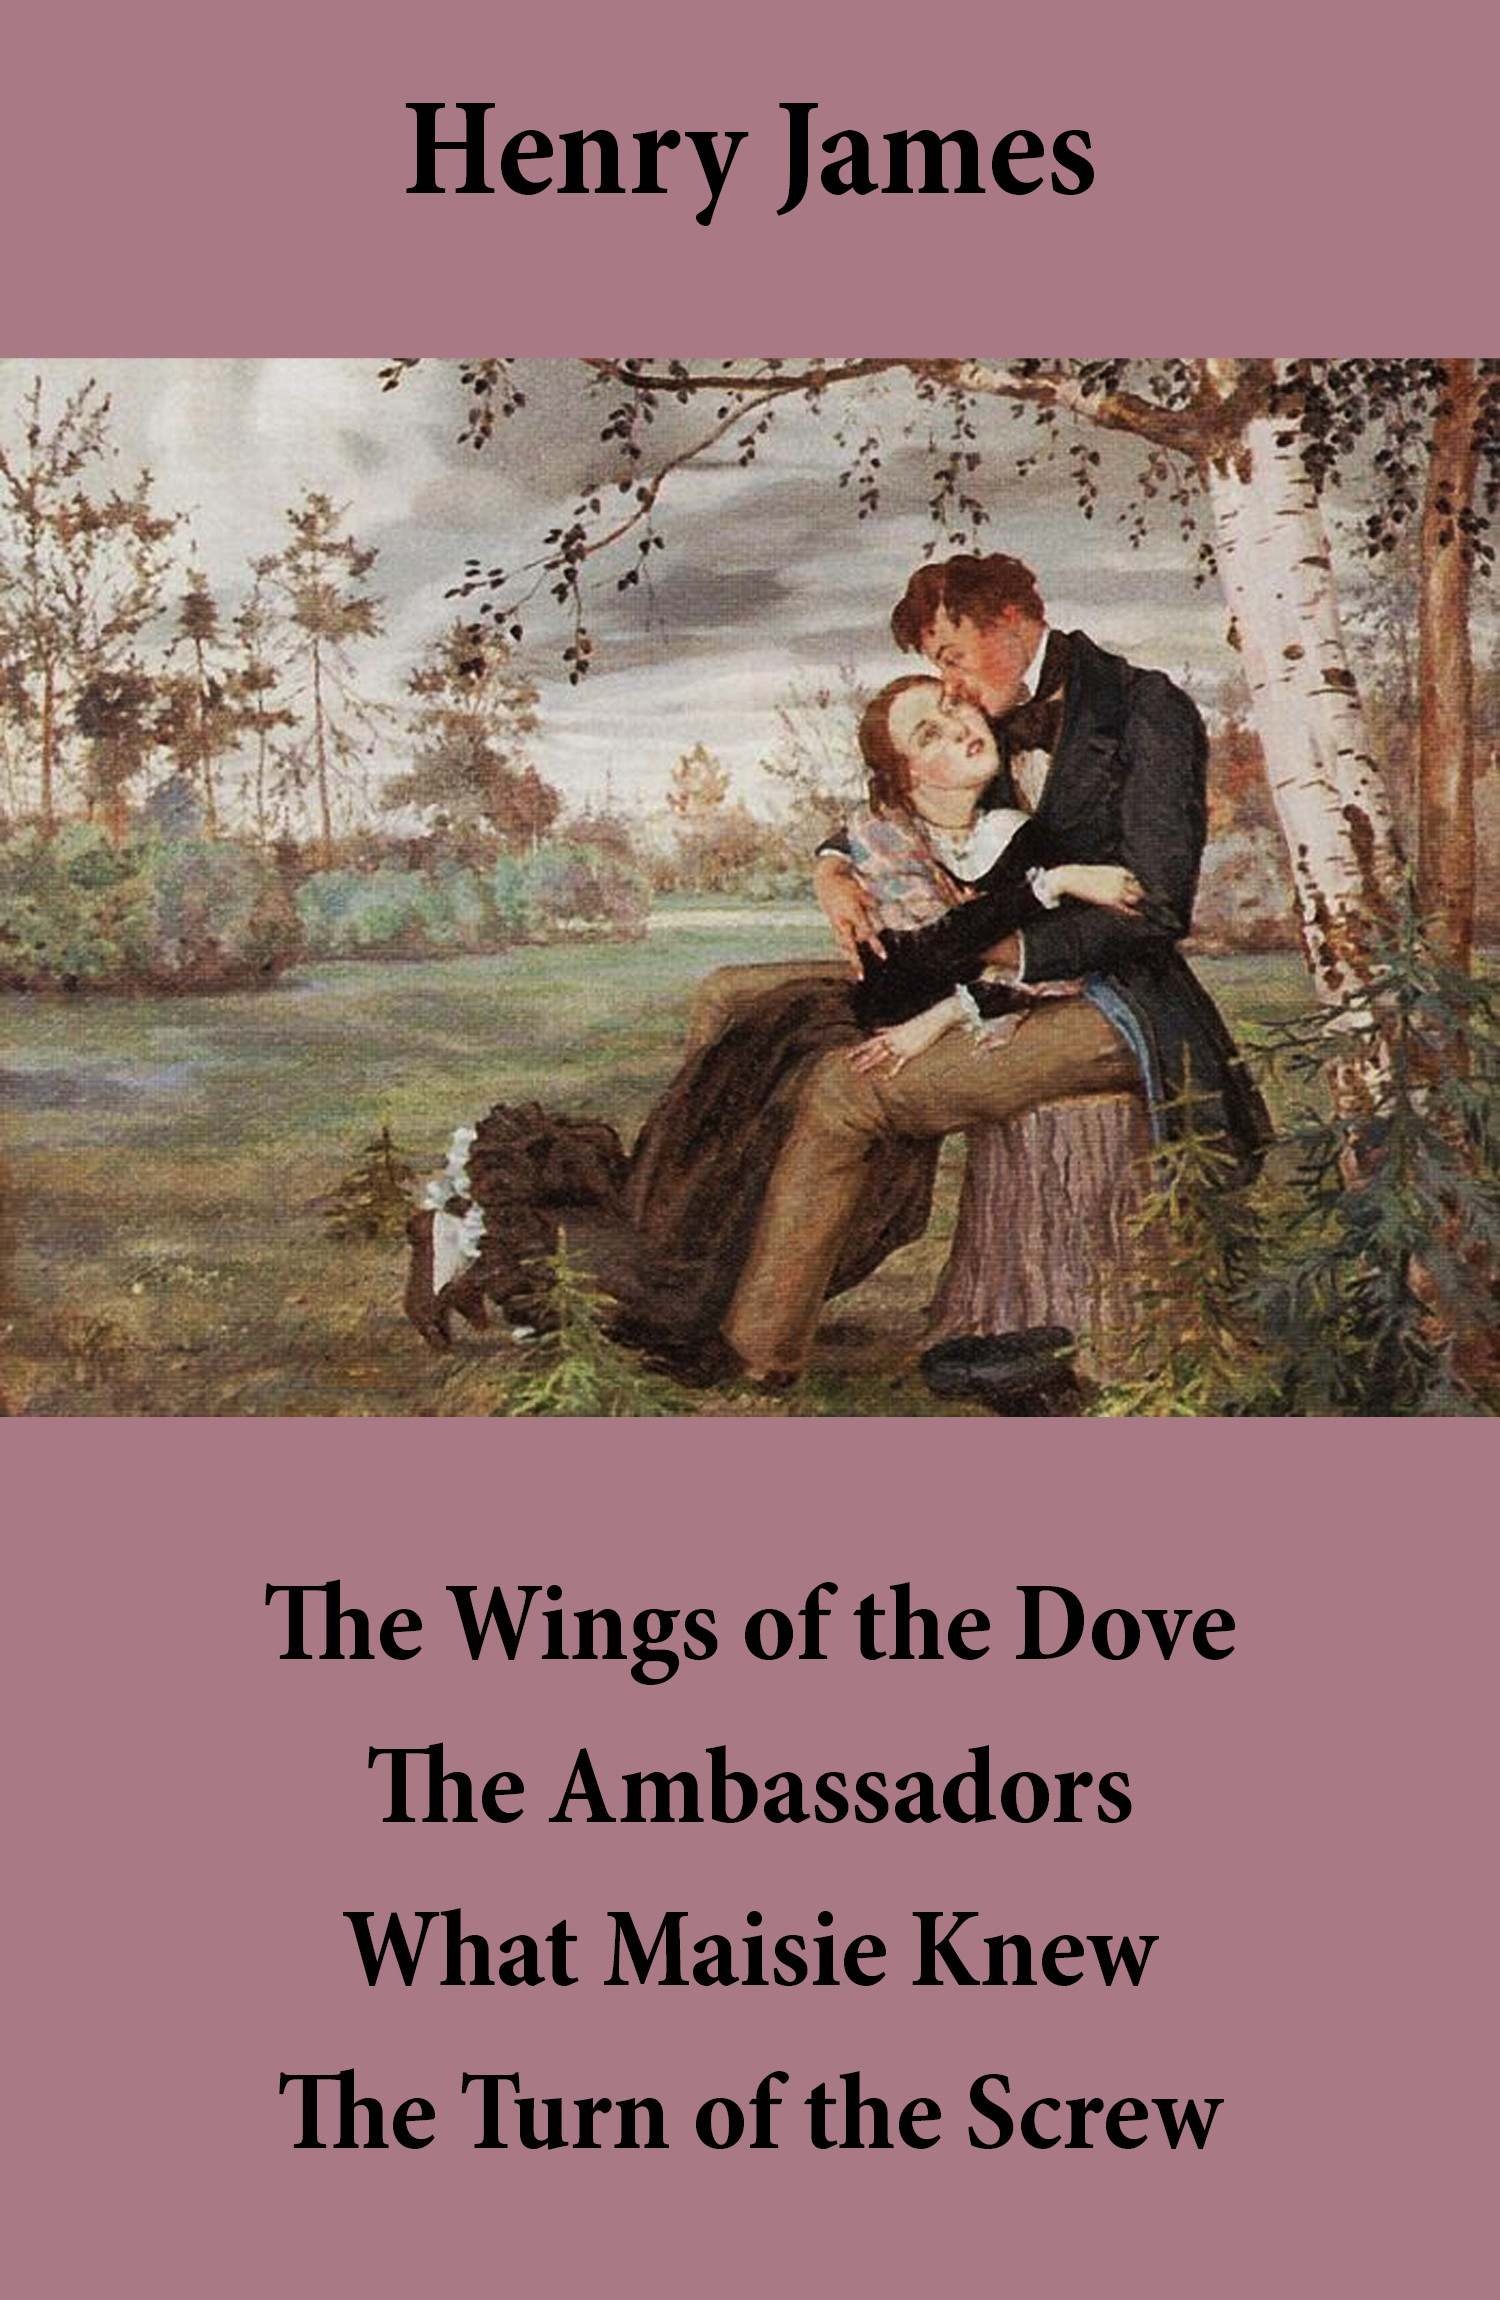 The Wings of the Dove + The Ambassadors + What Maisie Knew + The Turn of the Screw (4 Unabridged Classics)